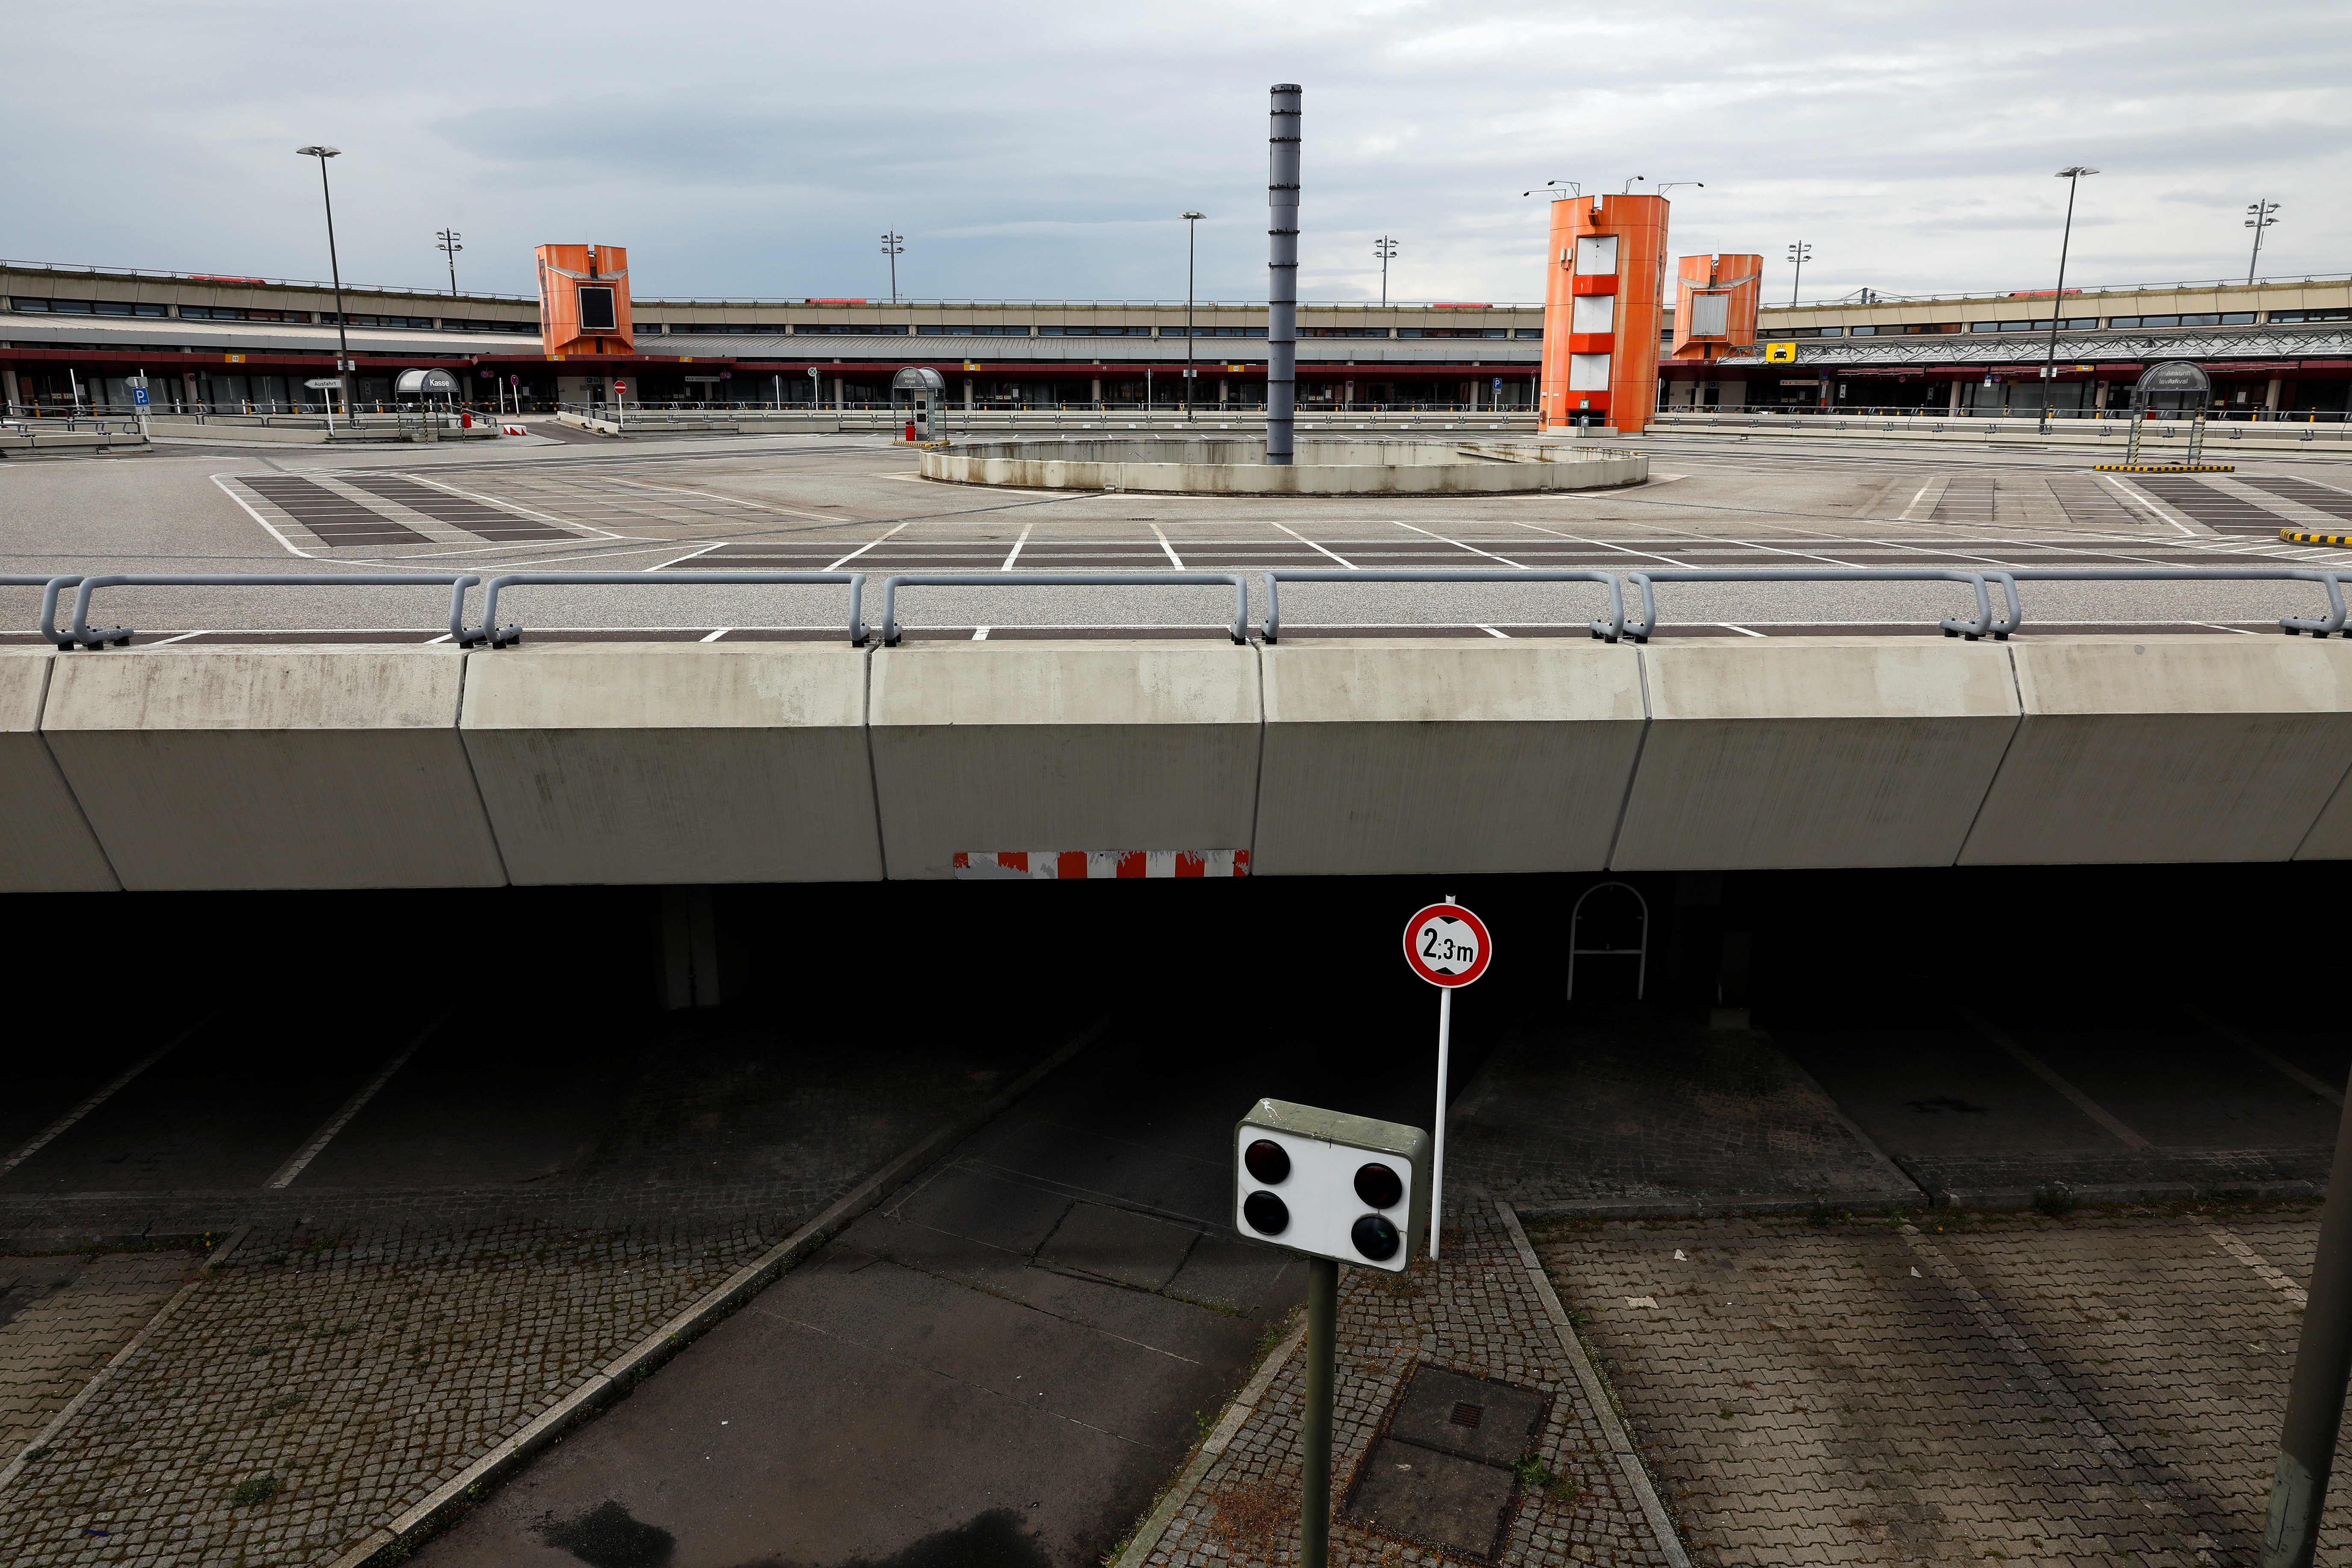 The former parking lot in the airport center is seen during the media tour at the former Berlin Tegel airport as the city's authorities are planning to build there more than 5,000 apartments, in Berlin, Germany May 4, 2021.  REUTERS/Michele Tantussi